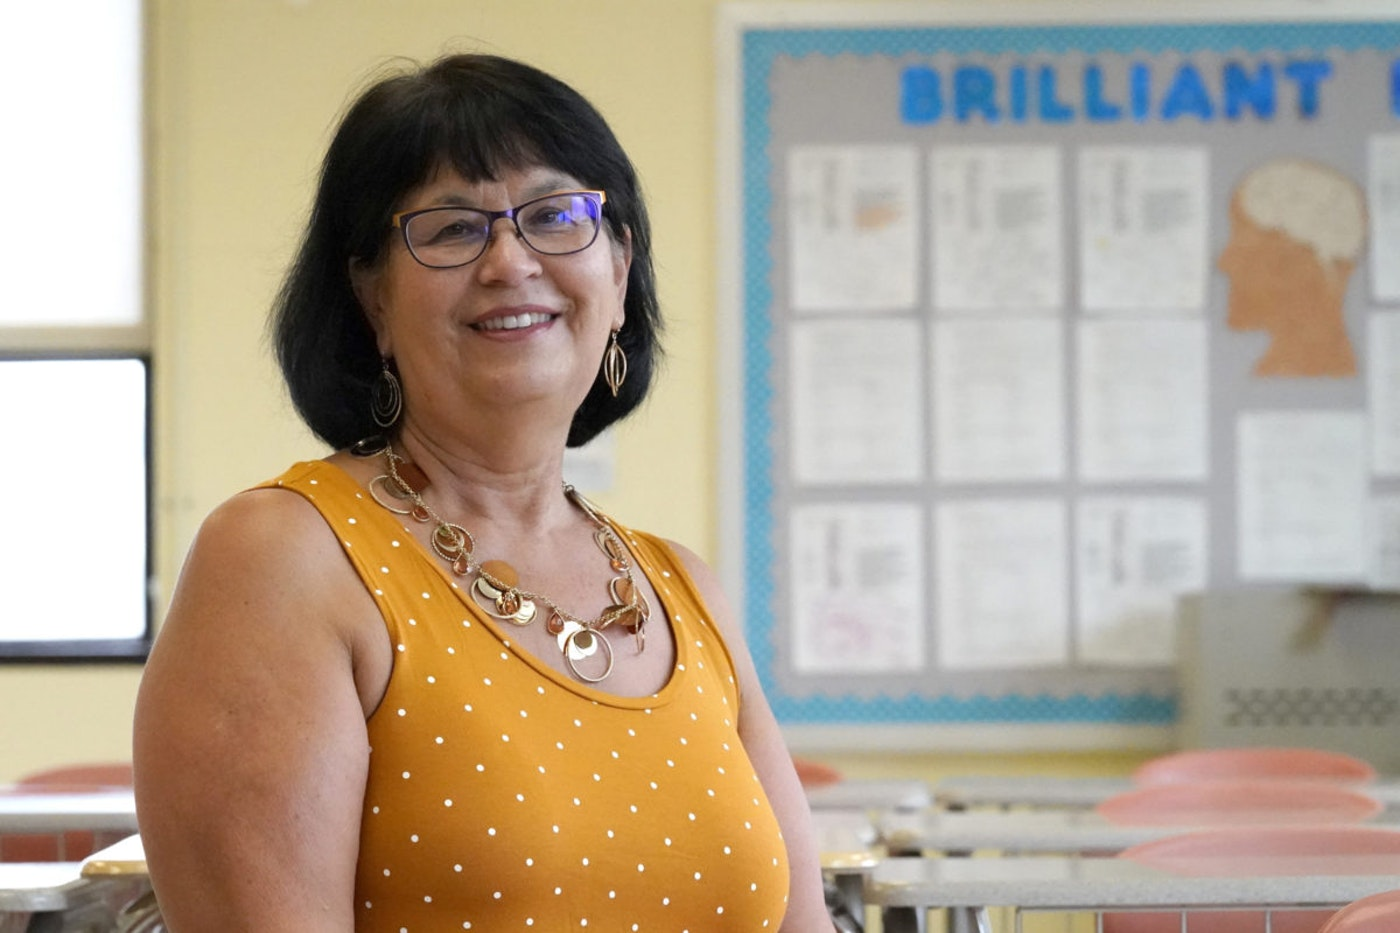 Geraldine Swann, director of community outreach at Hampstead Hill Academy in Baltimore, poses for a photograph Monday, Aug. 31, 2020, in Baltimore. The pandemic has Geri Swann working her cell phone constantly, as she gets up to 100 emails a day seeking help for students and their families. (AP Photo/Julio Cortez)